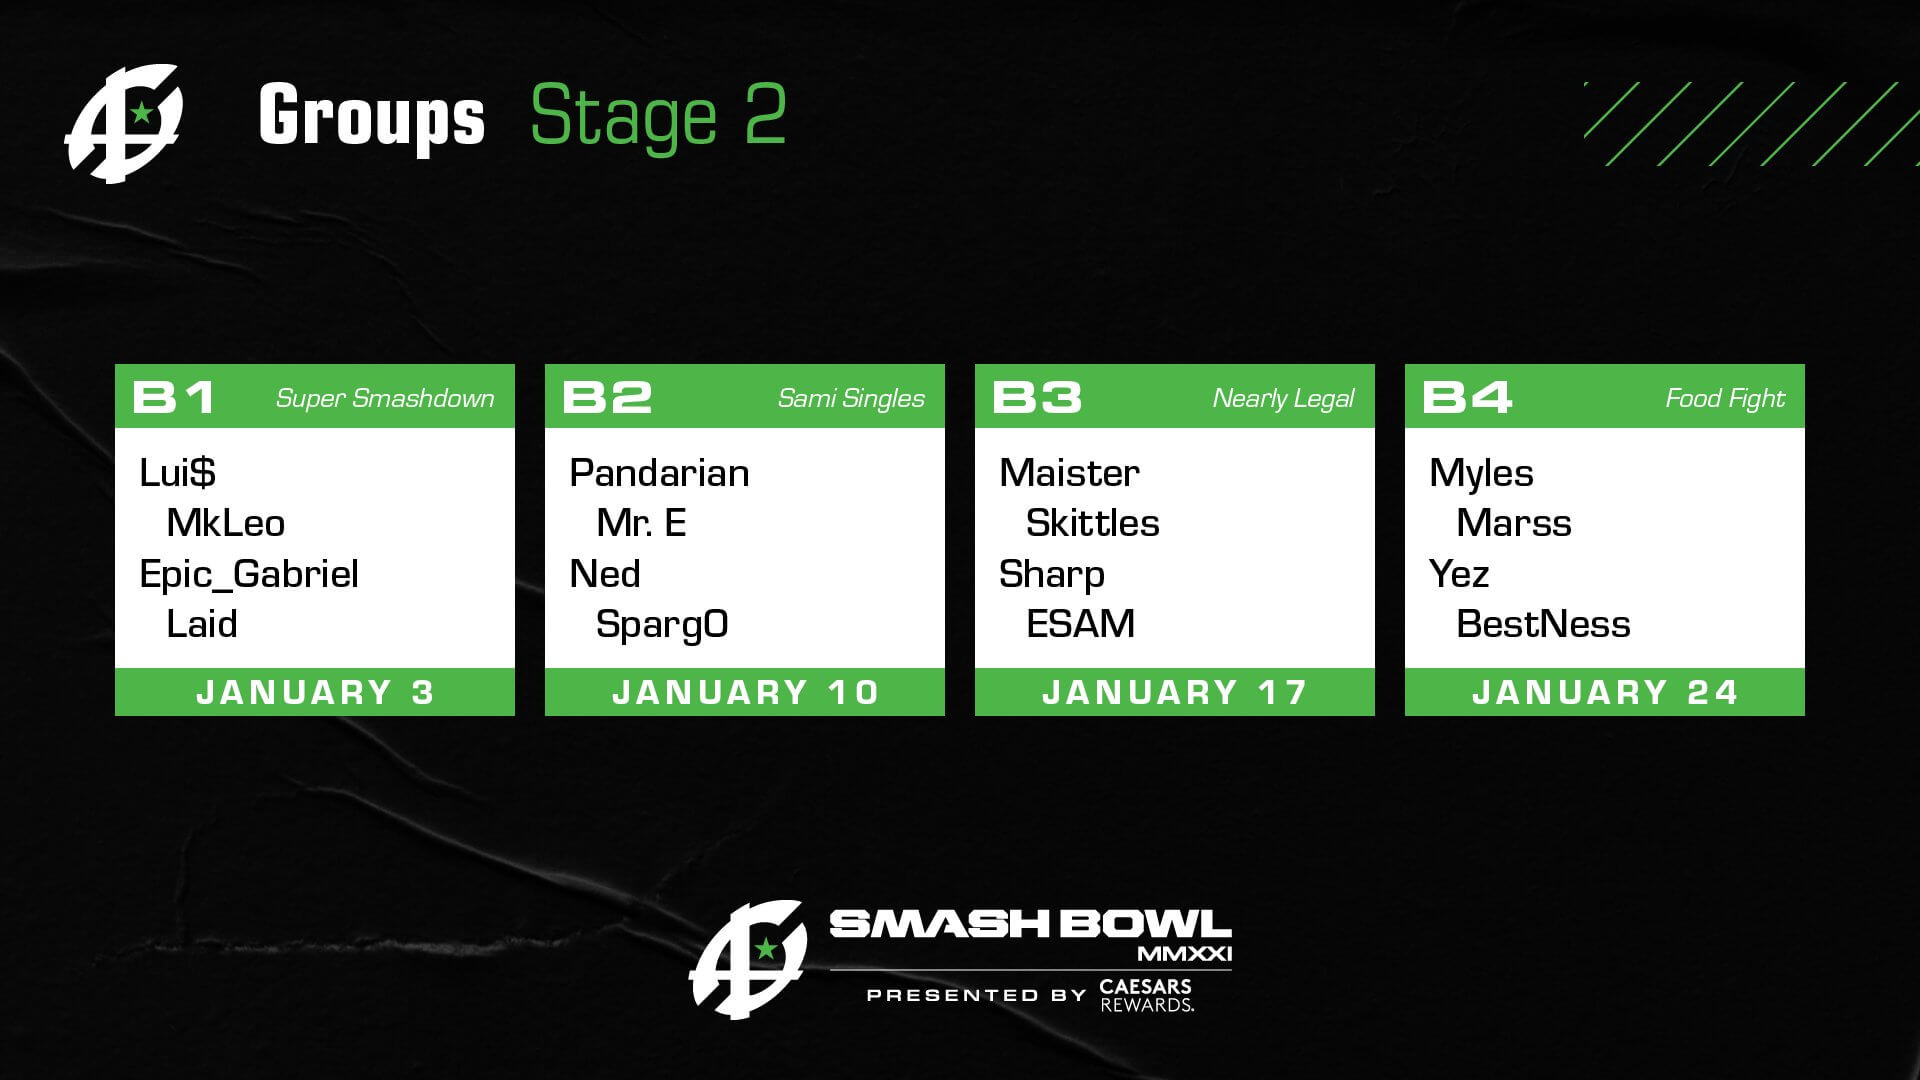 Halfway Through Smash Bowl MMXXI's Stage 2 Results & Highlights